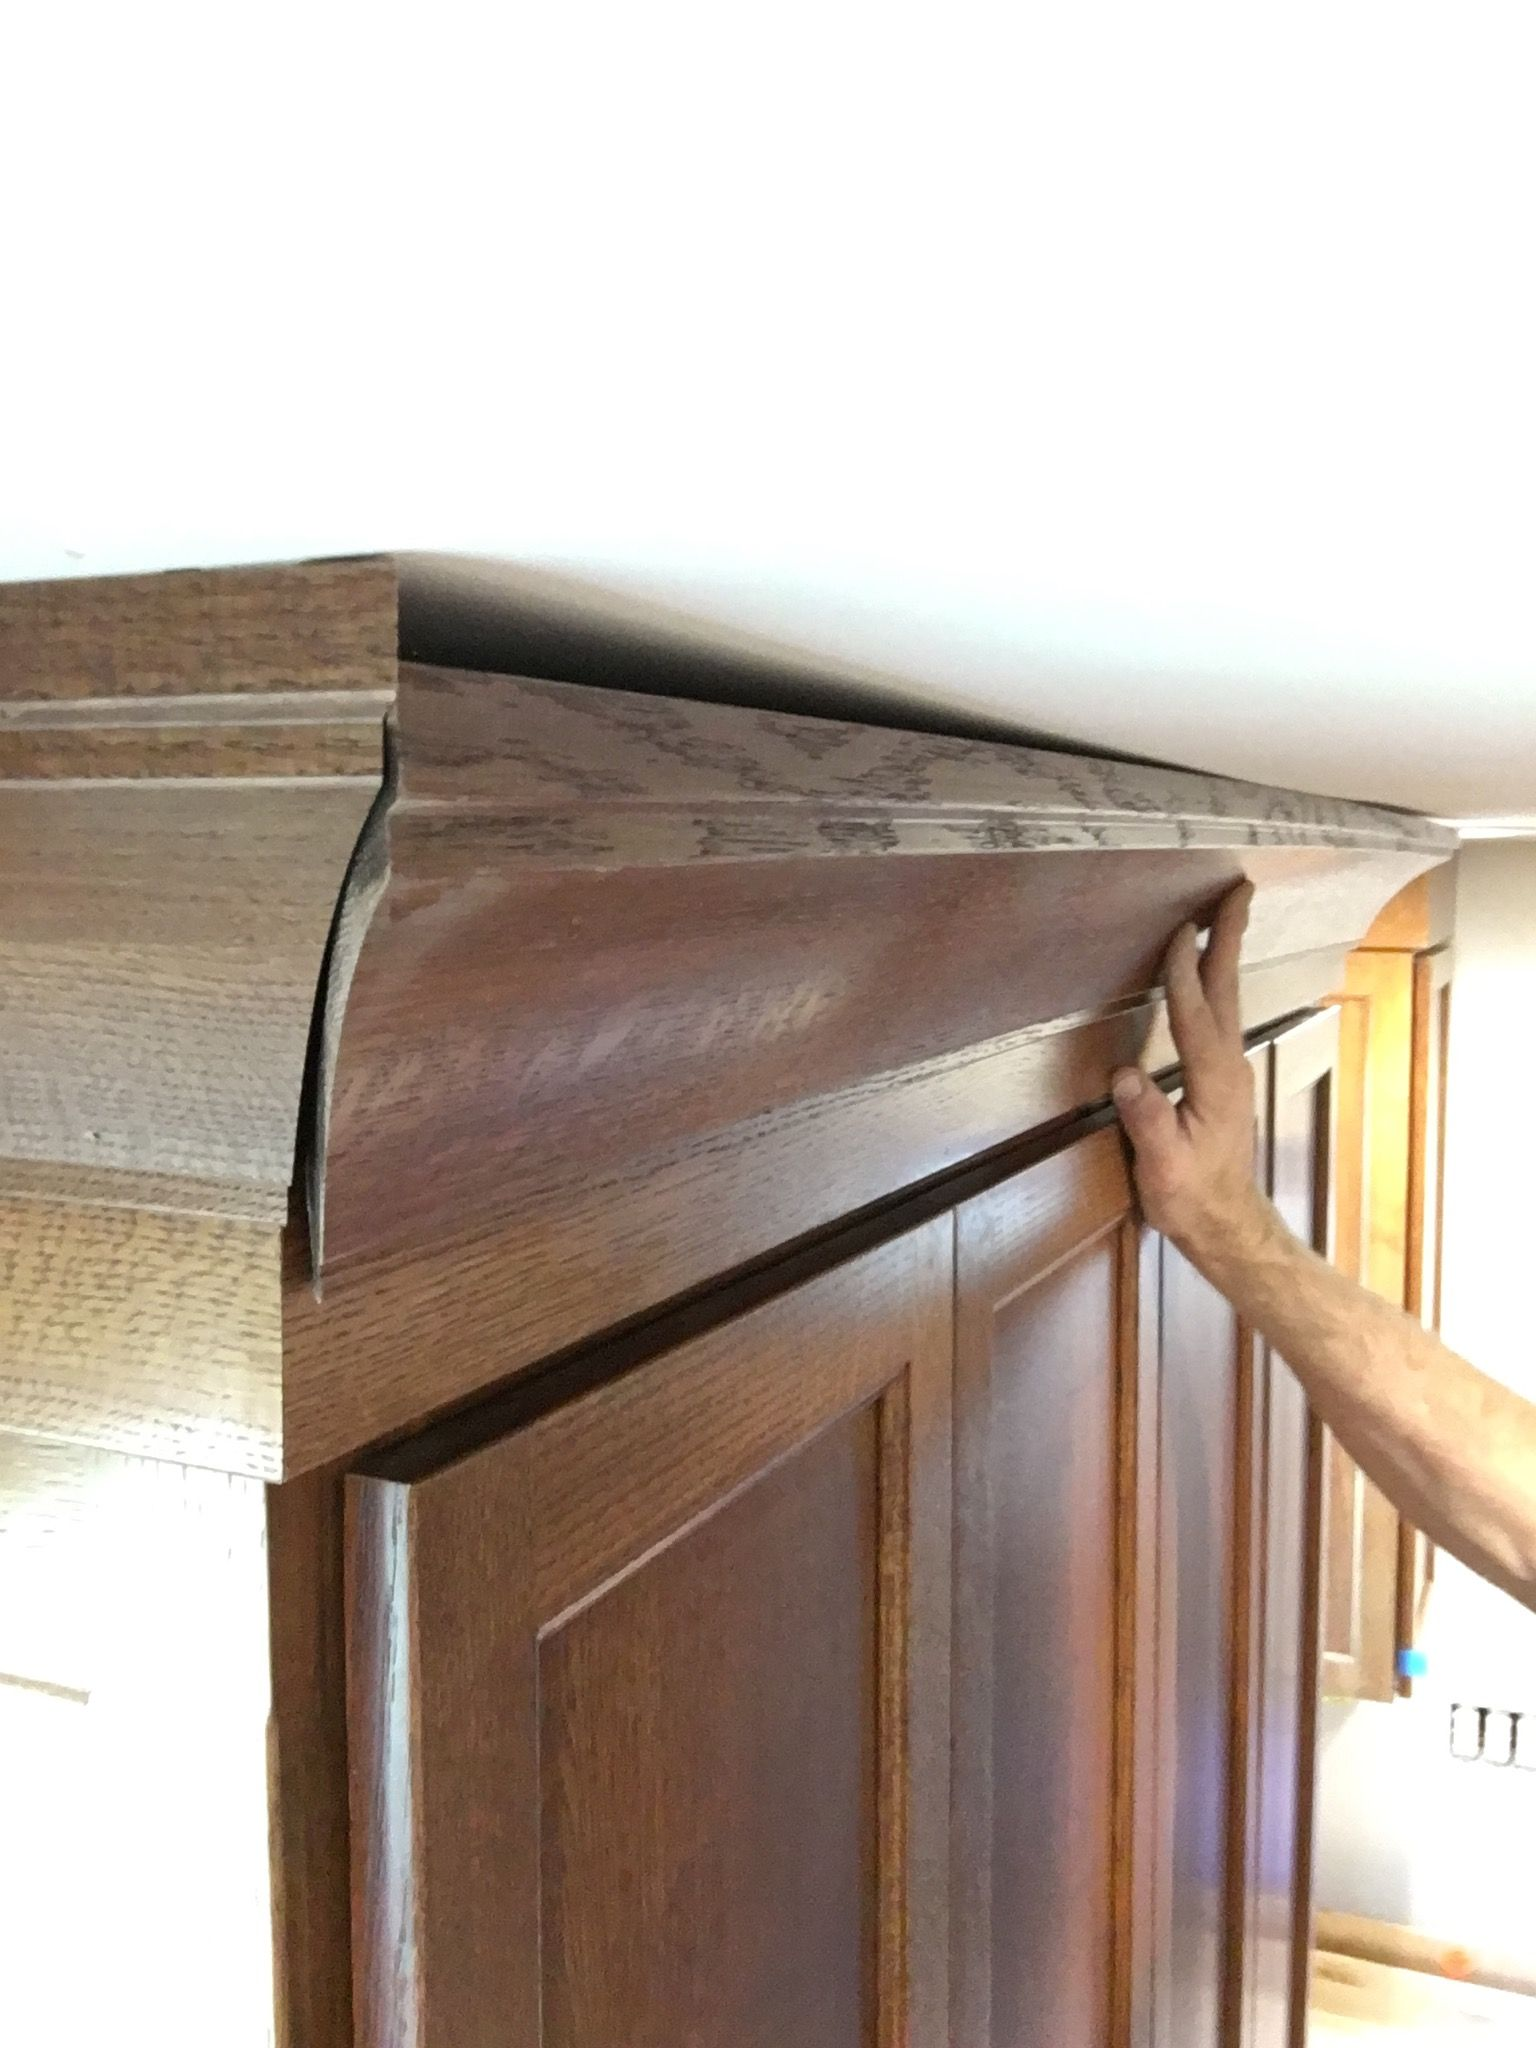 There Are A Number Of Different Ways To Install Crown Molding Over A Wavy Ceiling Bend The Molding Feather The Ceiling S Building A House Little Houses Home